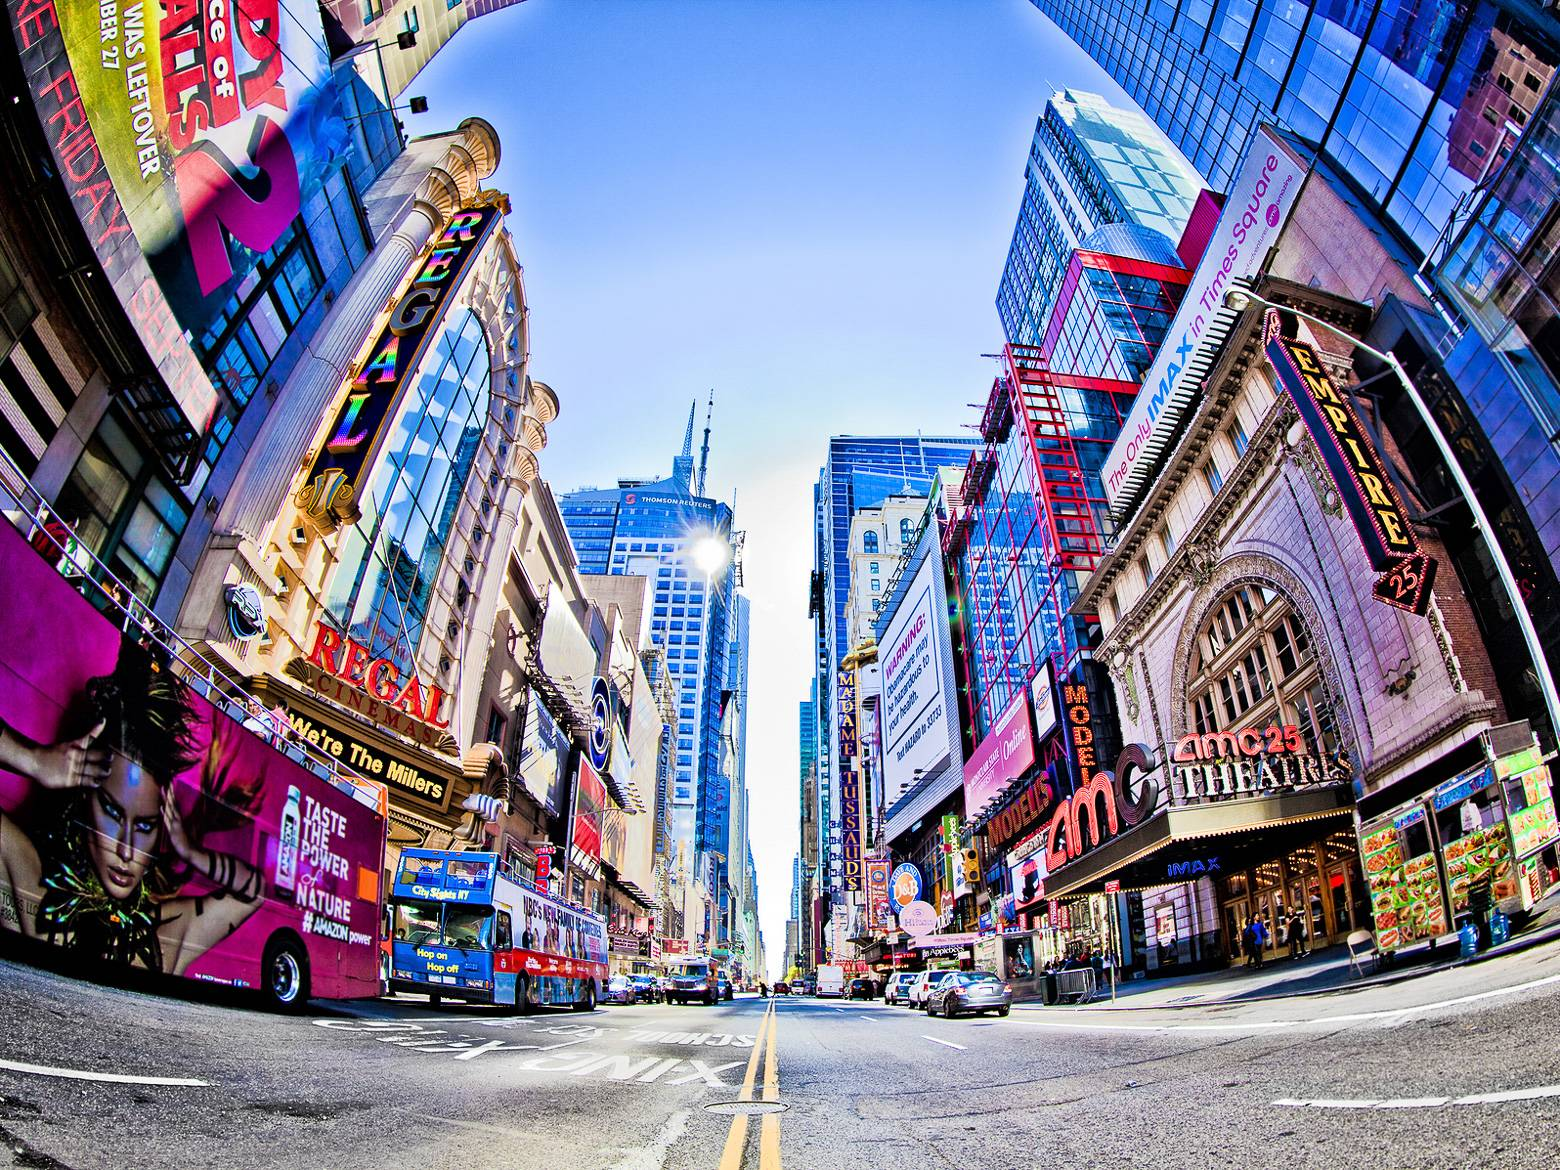 Image of Times Square